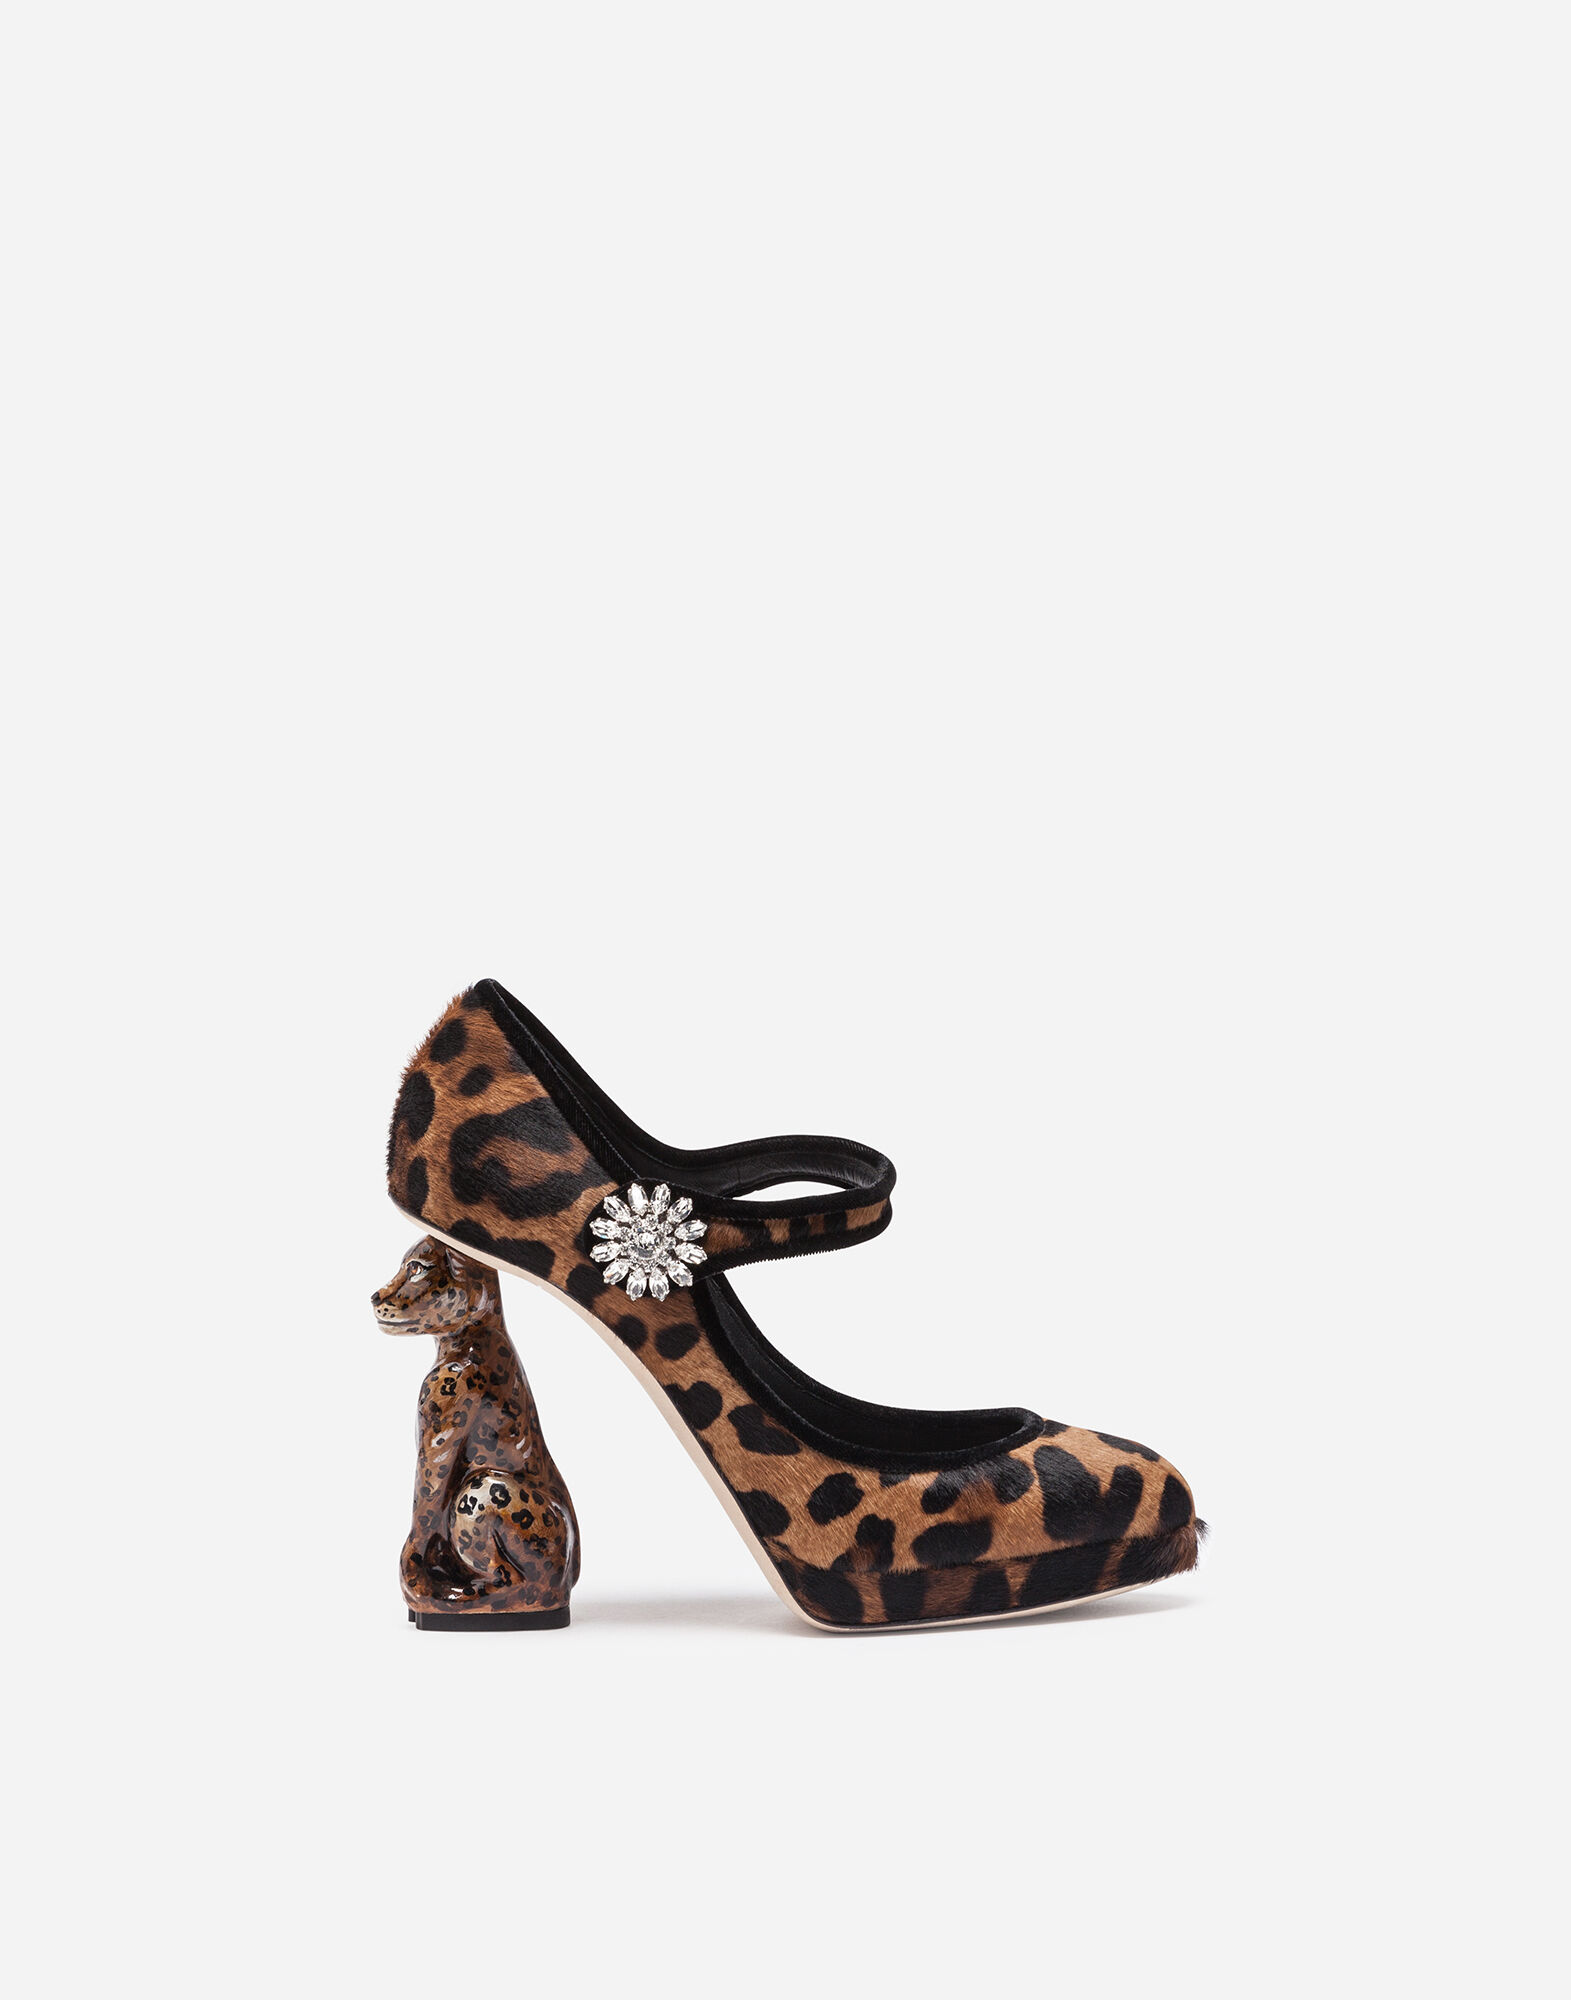 PONY HAIR MARY JANES WITH SCULPTURAL HEEL